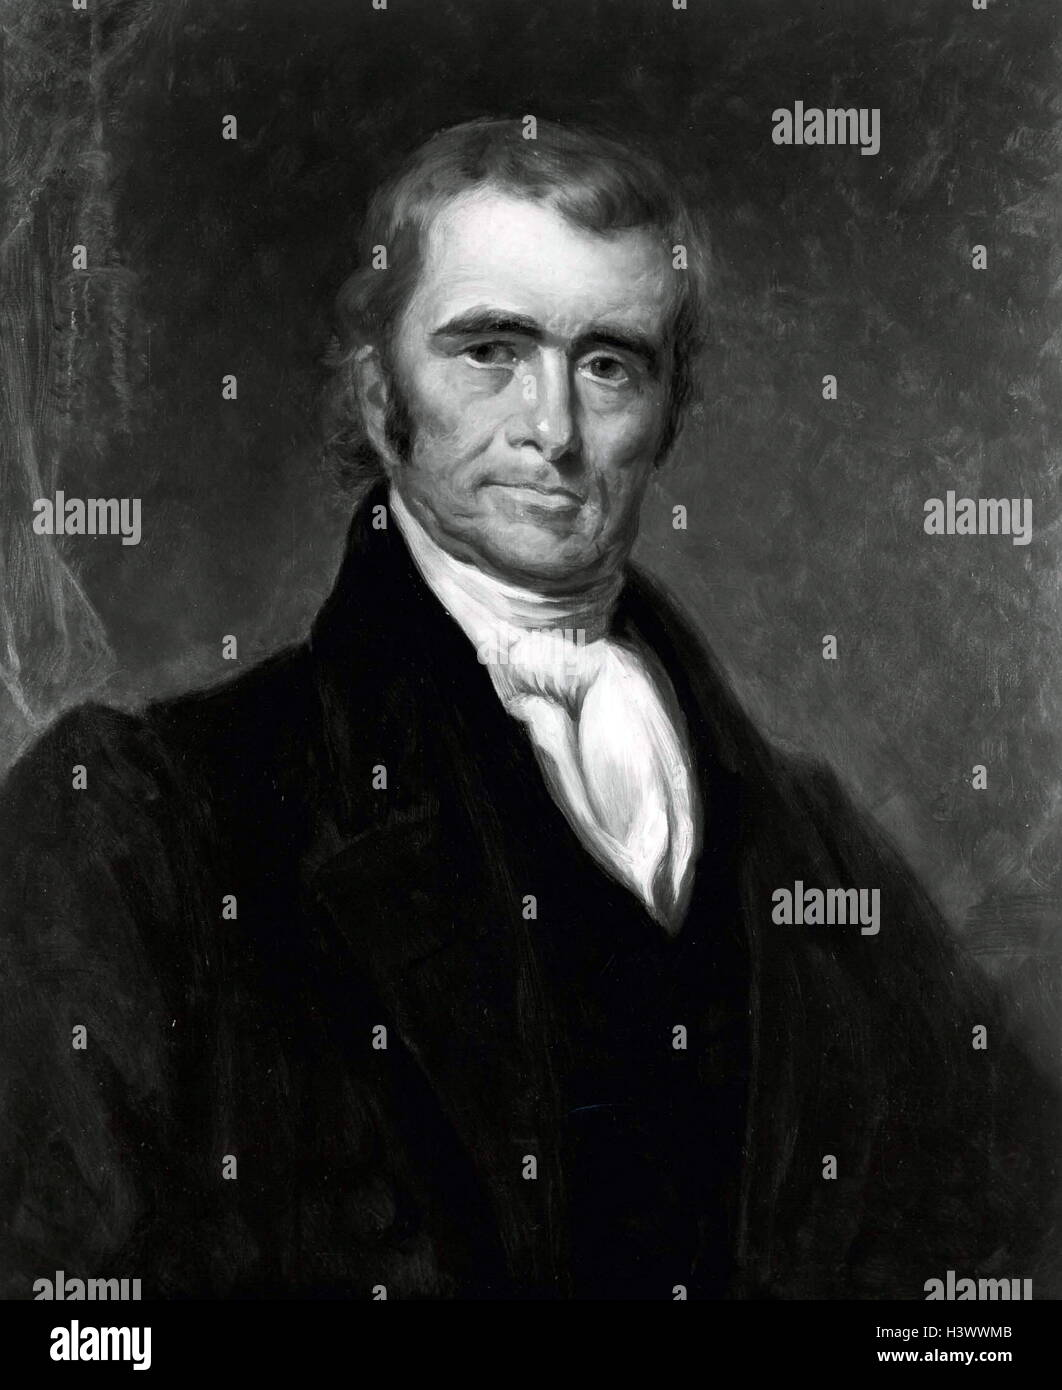 Portrait of John Marshall (1755-1835) fourth Chief Justice of the United States of America. Dated 19th Century - Stock Image